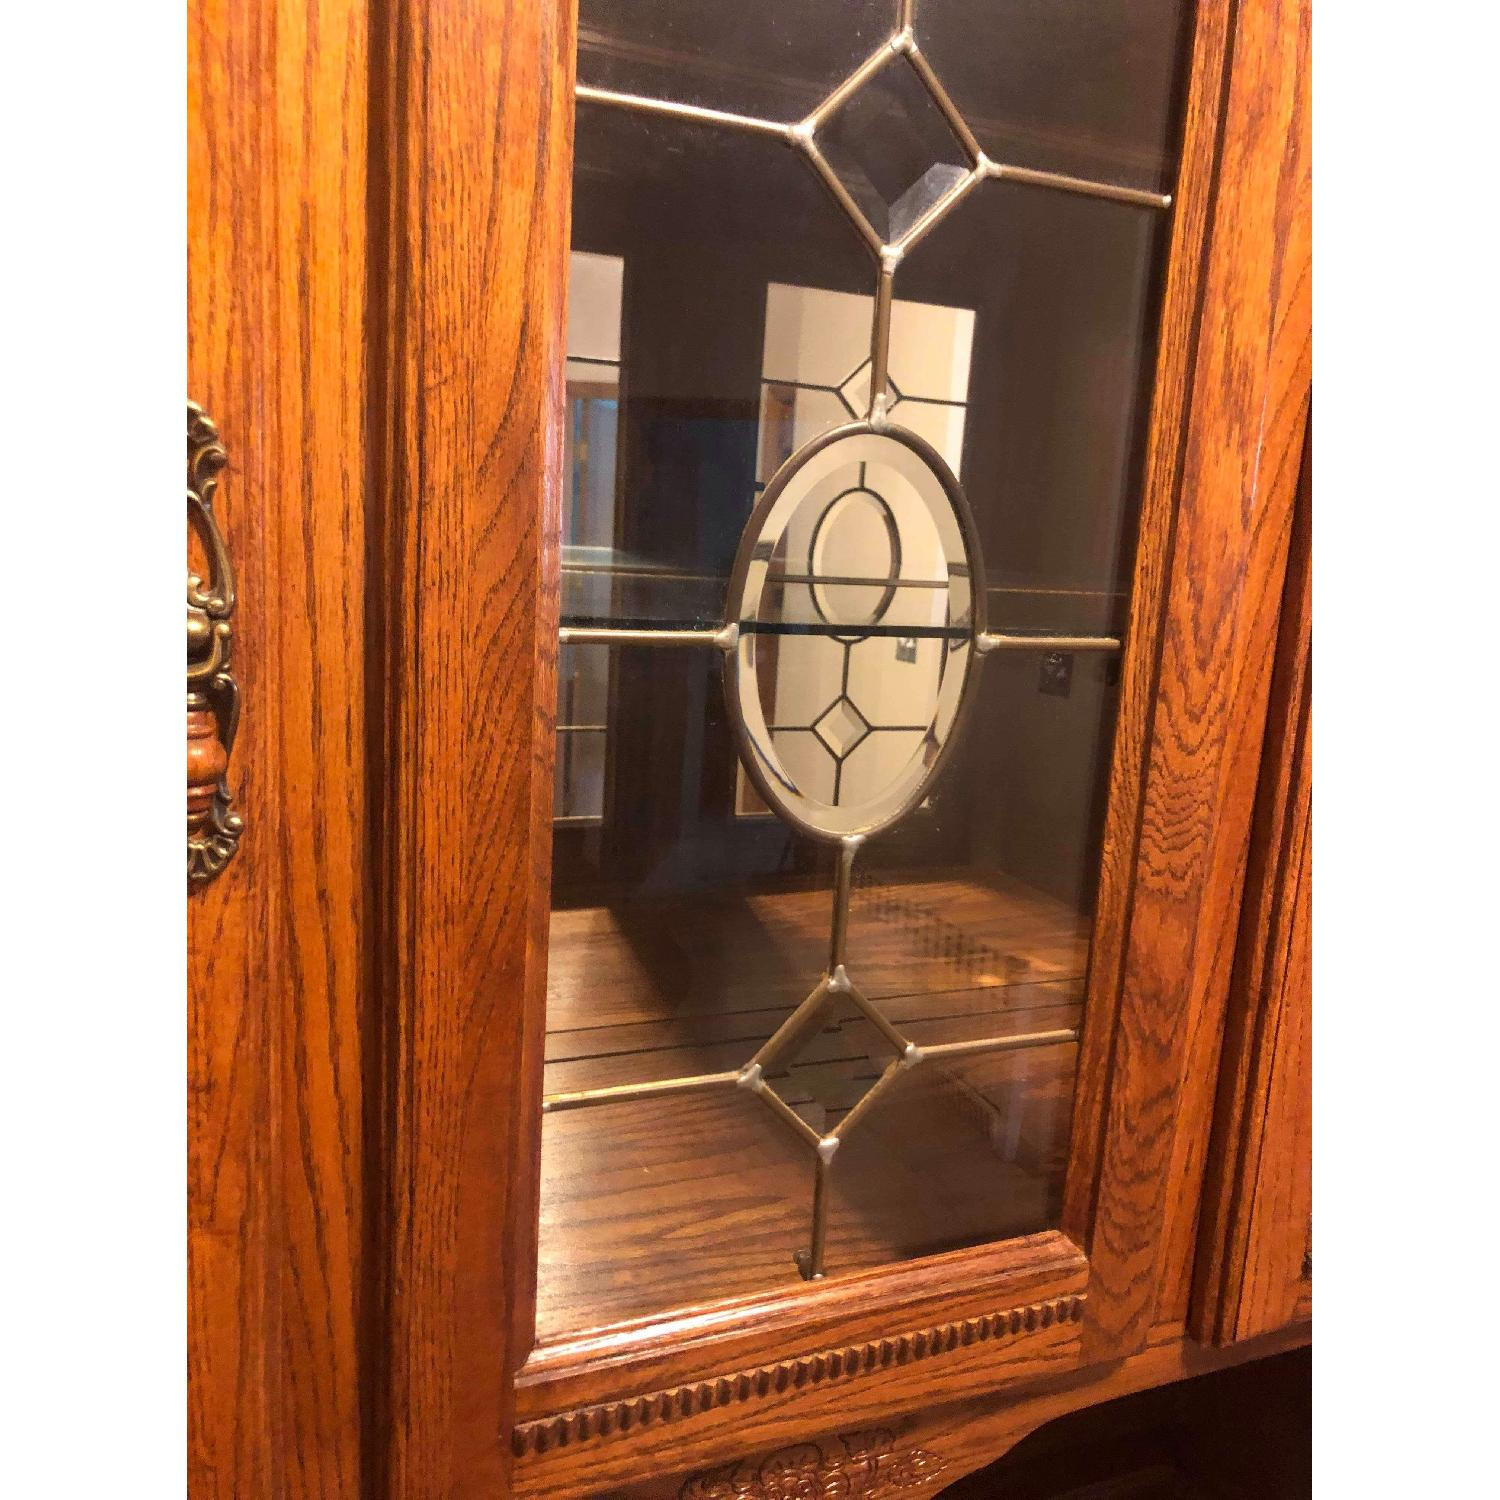 Solid Wood Early American Style Hutch w/ Lights - image-9